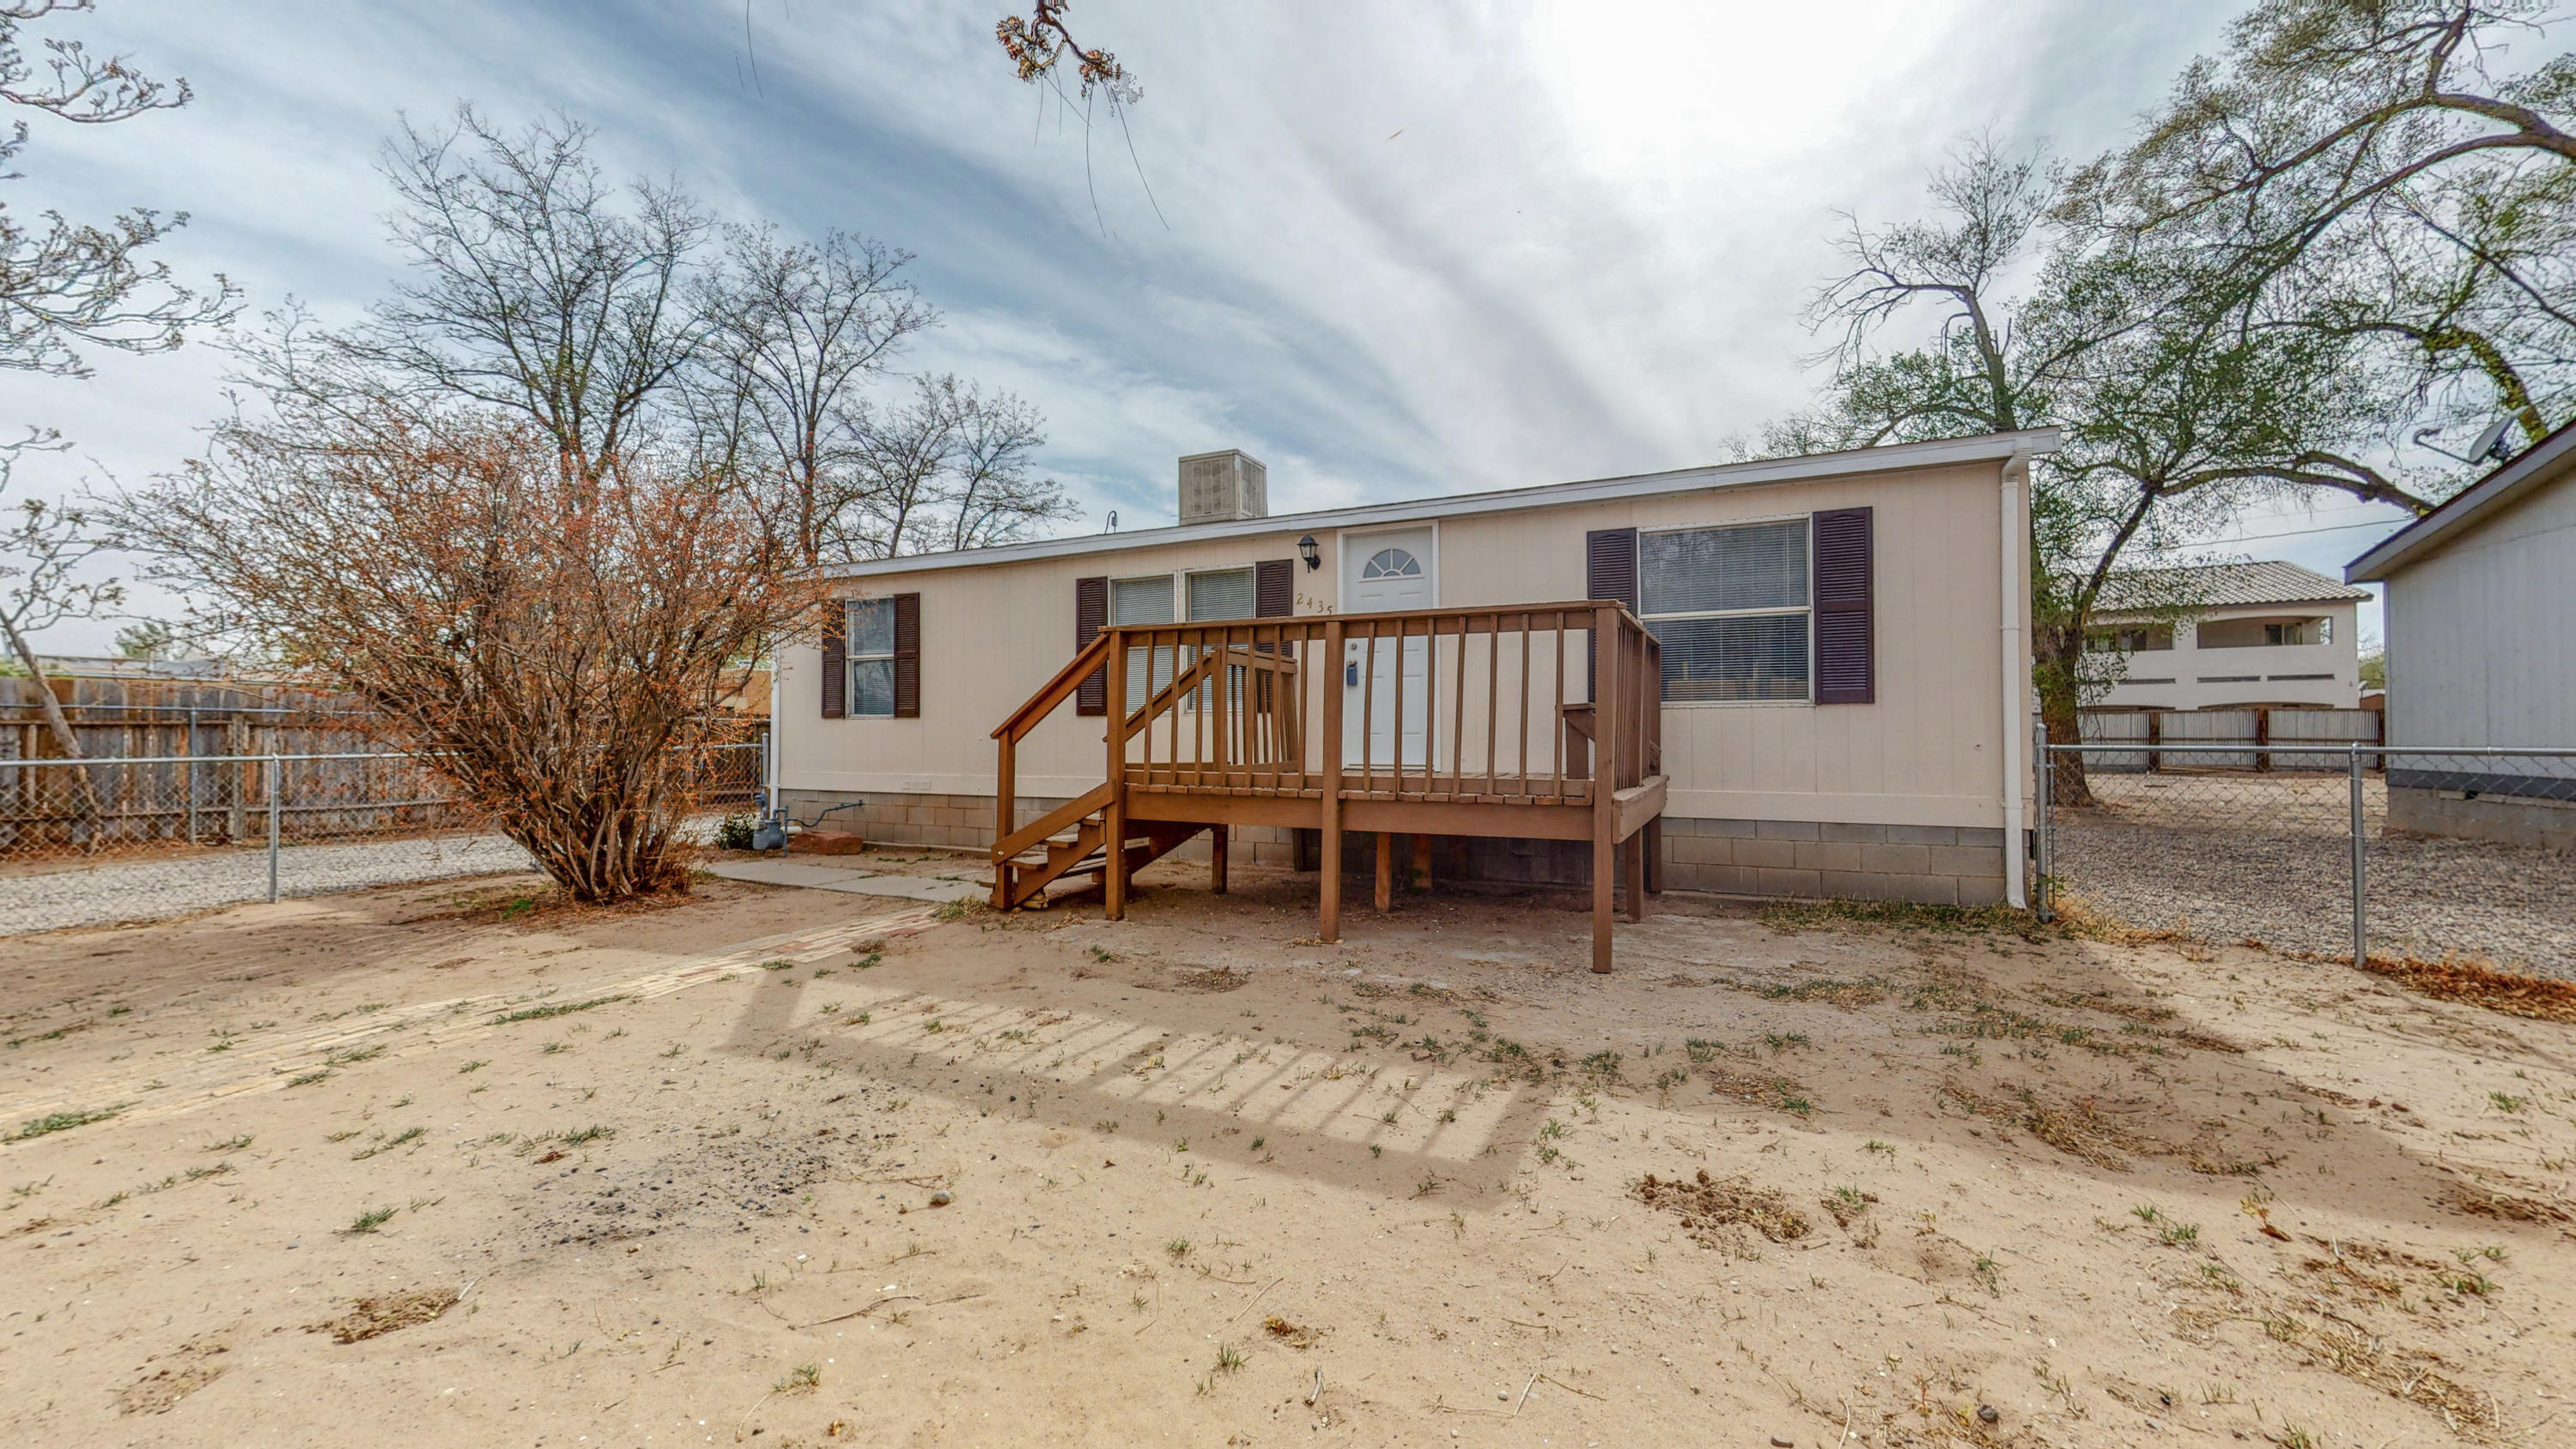 Gorgeous manufactured home on permanent foundation, with a great year for entertainment. Appliance convey with the property. Great storage in the back yard.